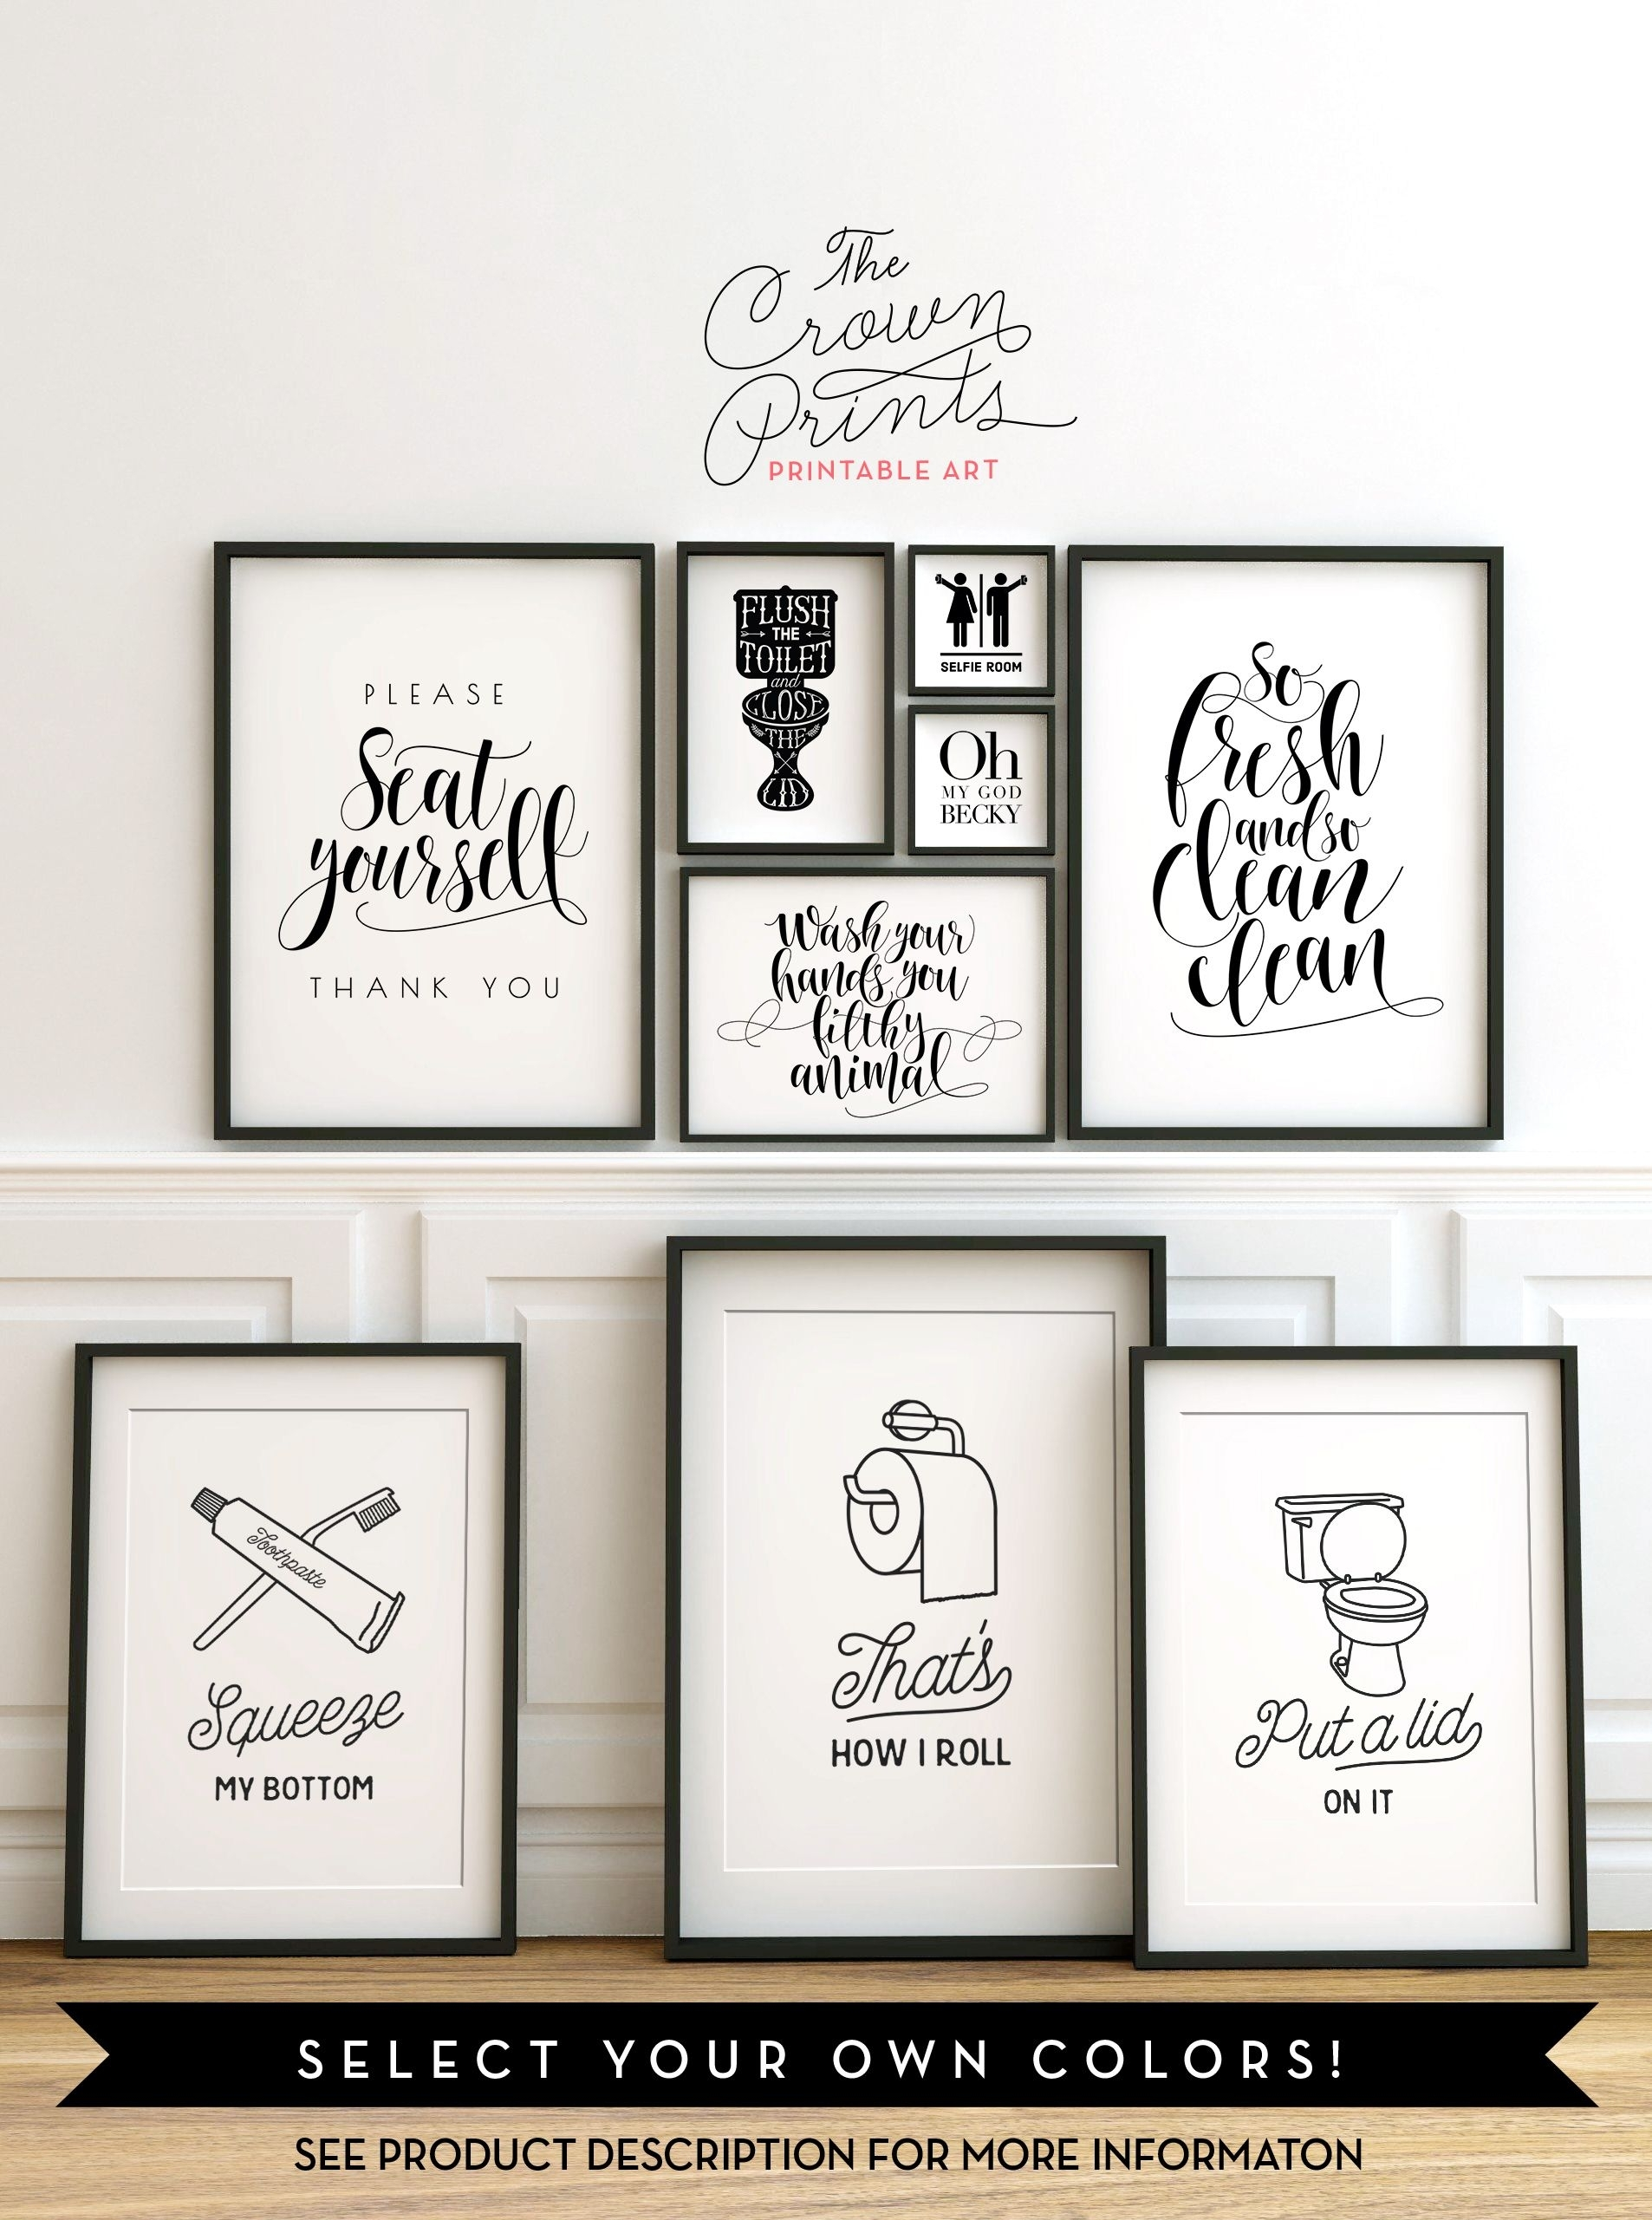 Printable Bathroom Wall Art From The Crown Prints On Etsy – Lots Intended For Newest Canvas Wall Art Funny Quotes (View 12 of 15)